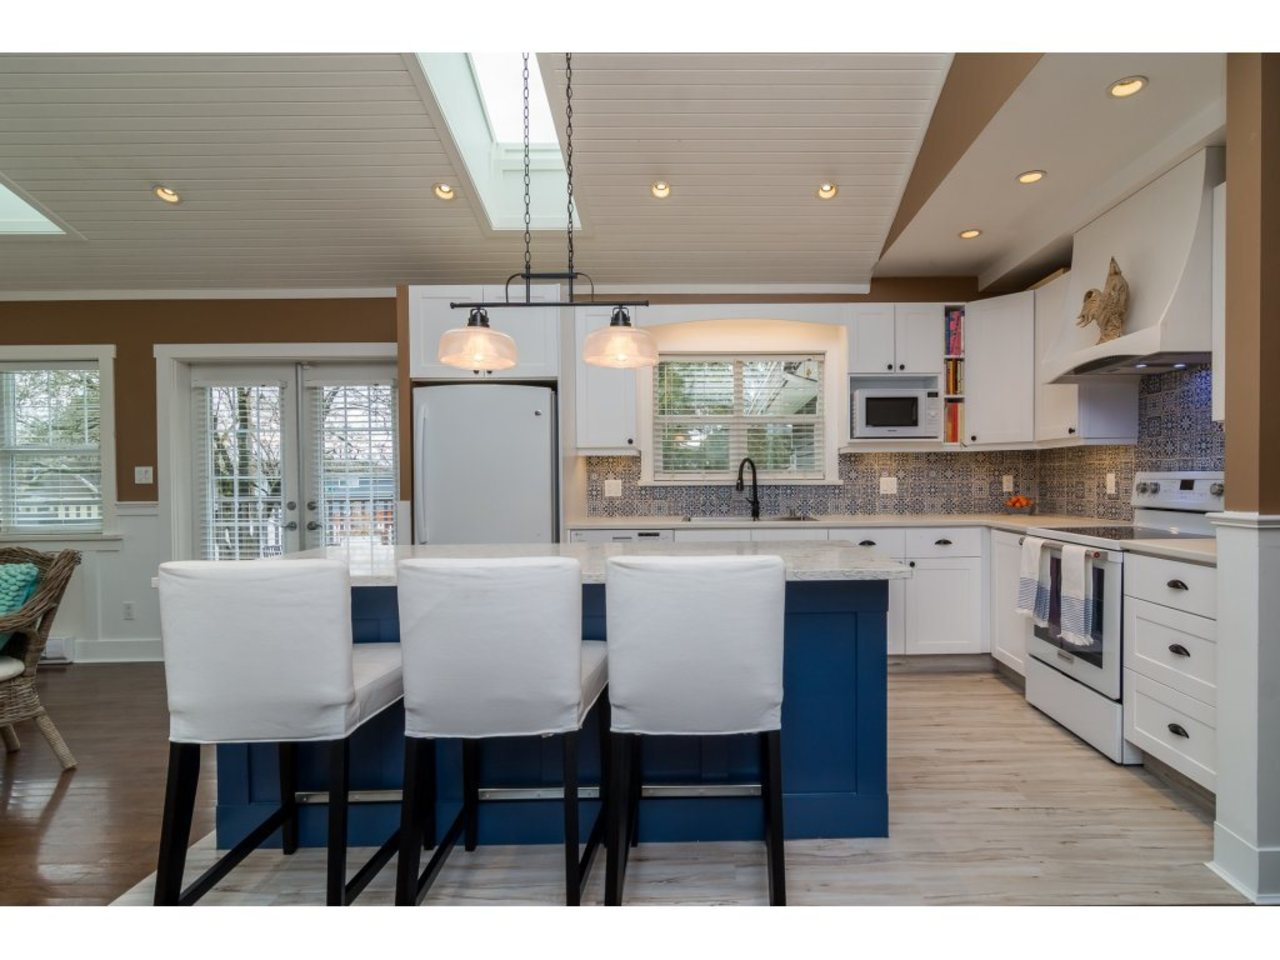 KItchen -Listed by Solon REM, Top Langley & Fraser Valley Realtor  at 7498 116a, Scottsdale, N. Delta